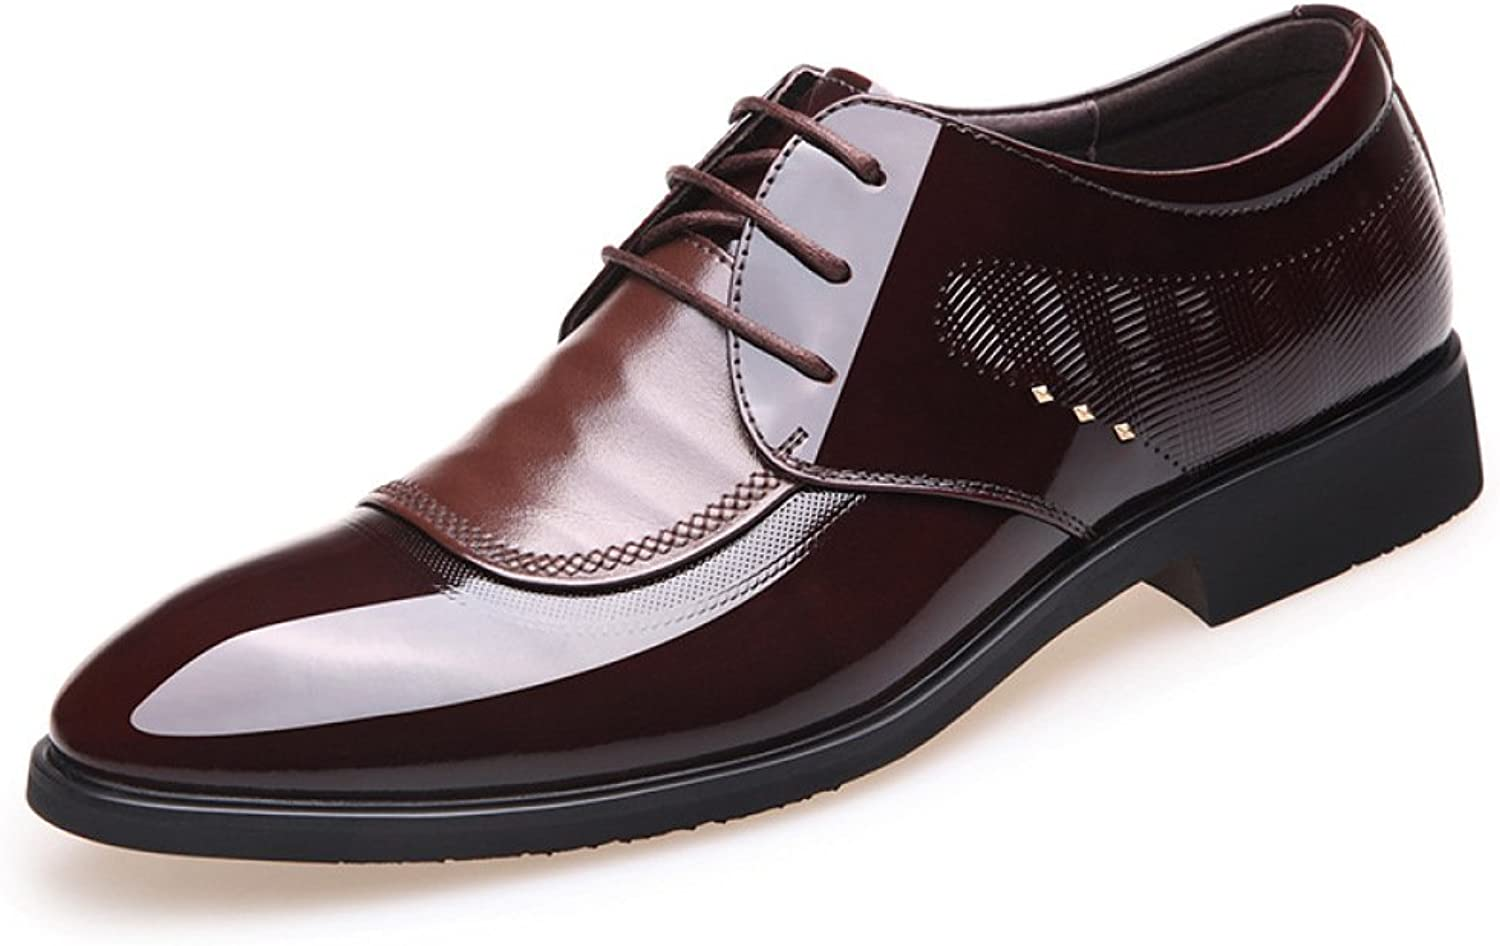 LEDLFIE Men's Real Leather shoes Leather Formalwear Business Leather shoes Men's shoes